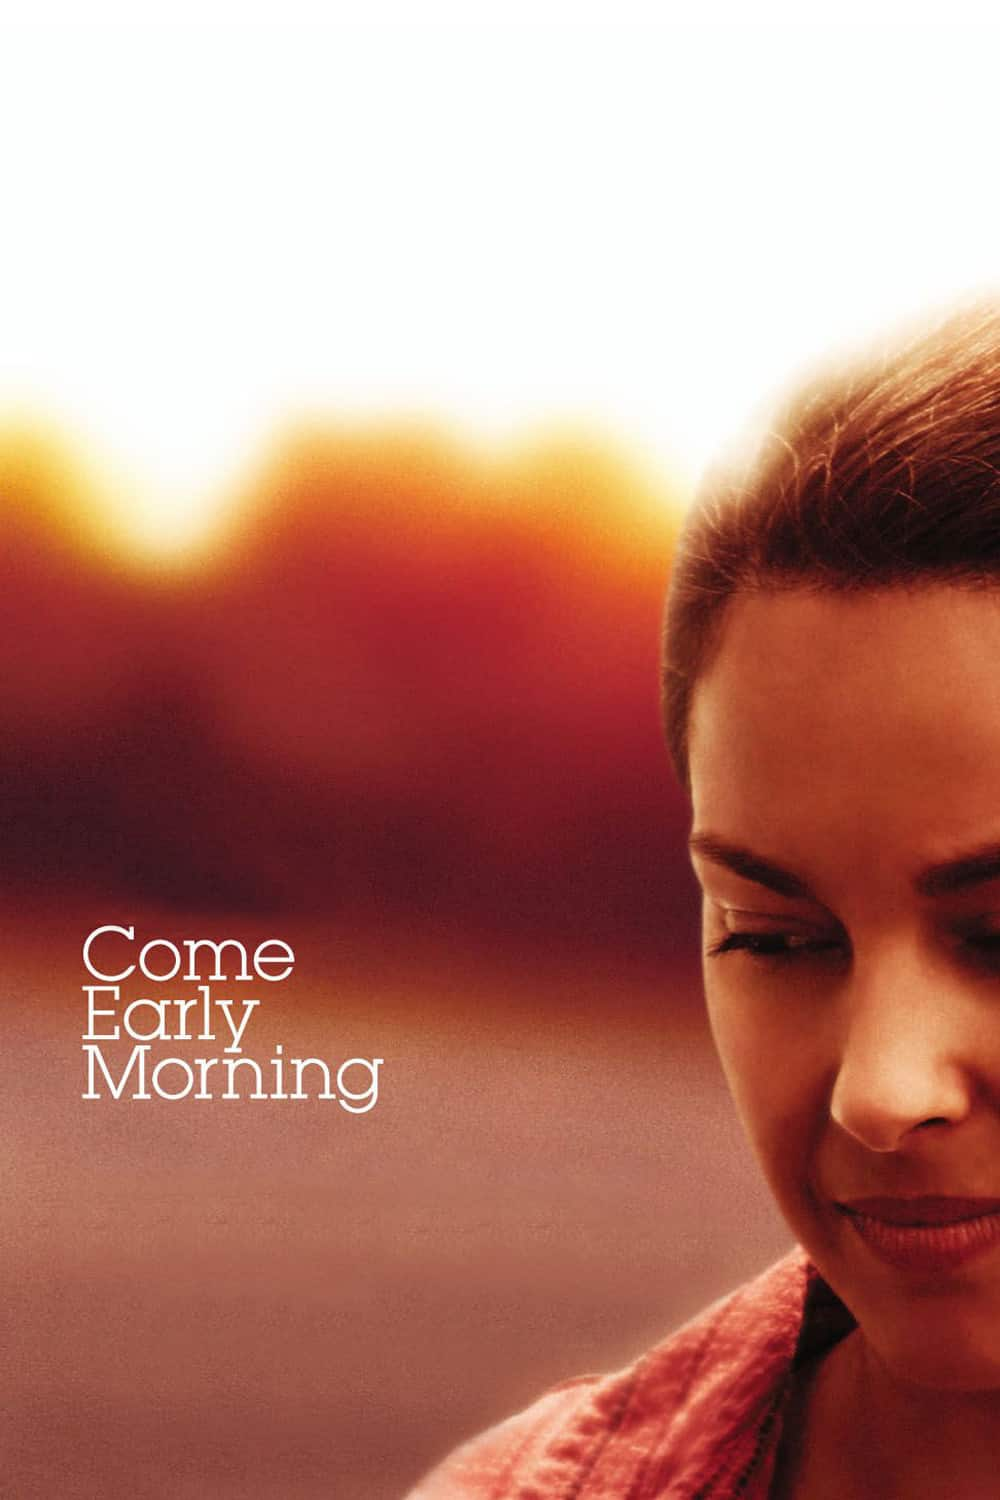 Come Early Morning, 2006